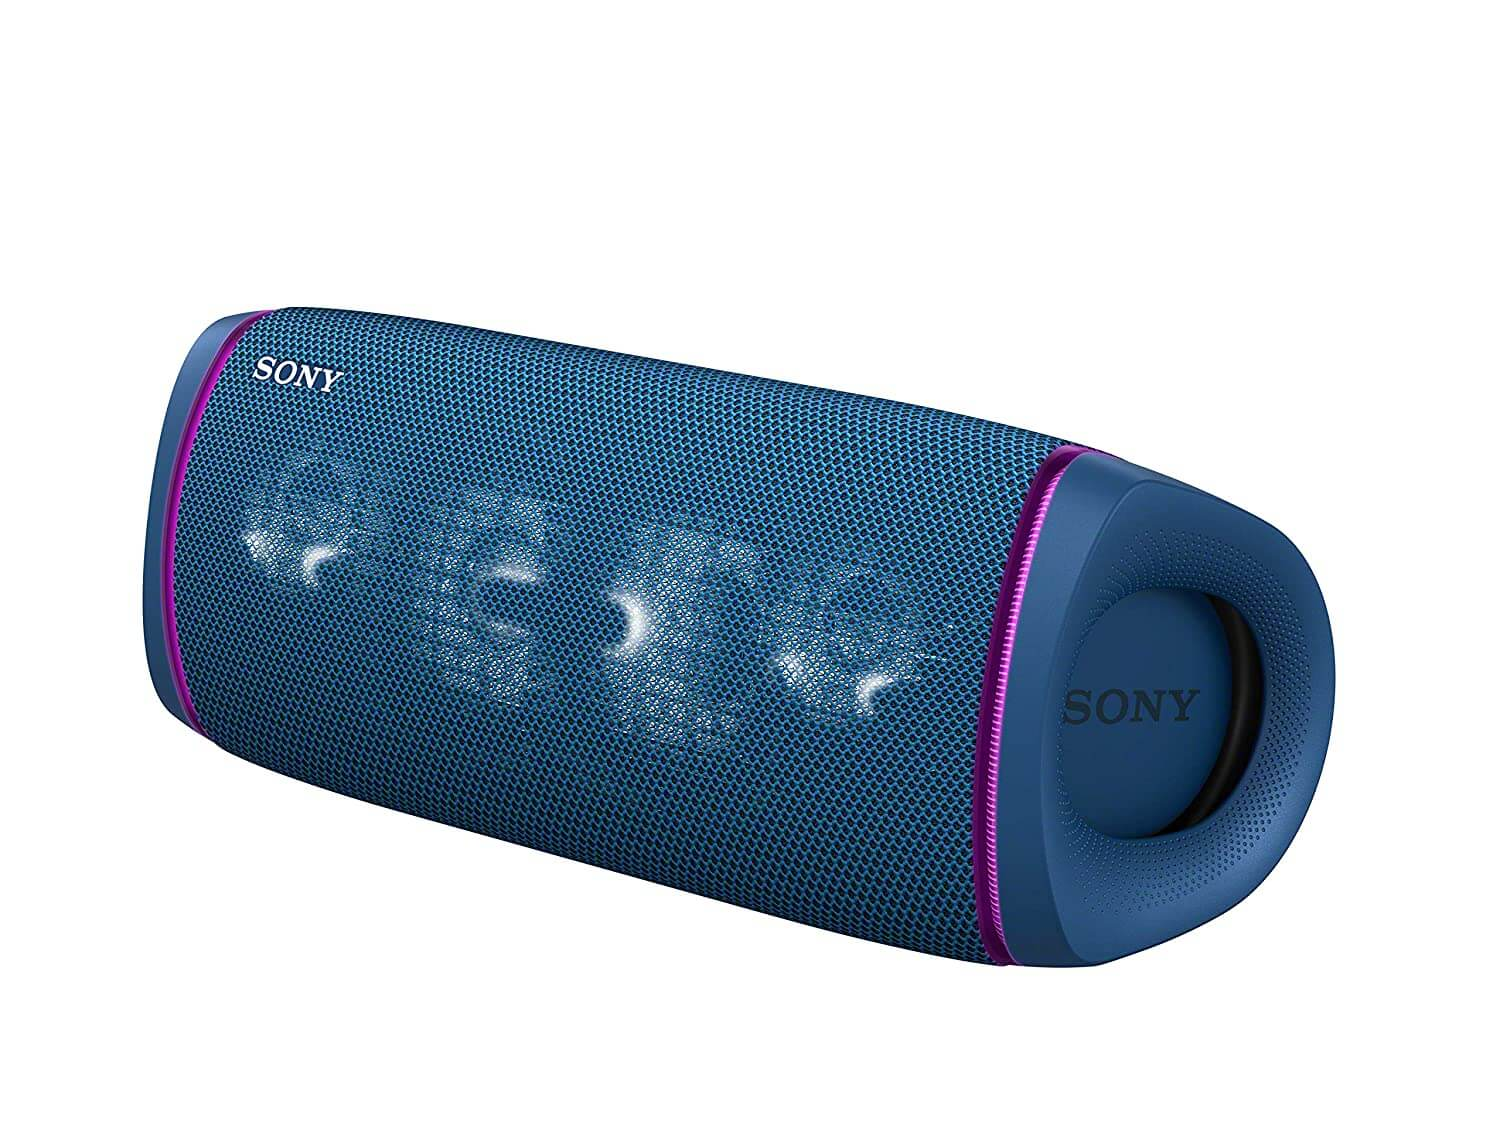 Sony SRS-XB43 Wireless Extra Bass Bluetooth Speaker with 24 Hours Battery Life, Party Lights, Party Connect, Waterproof, Dustproof, Rustproof, Speaker with Mic, Loud Audio for Phone Calls